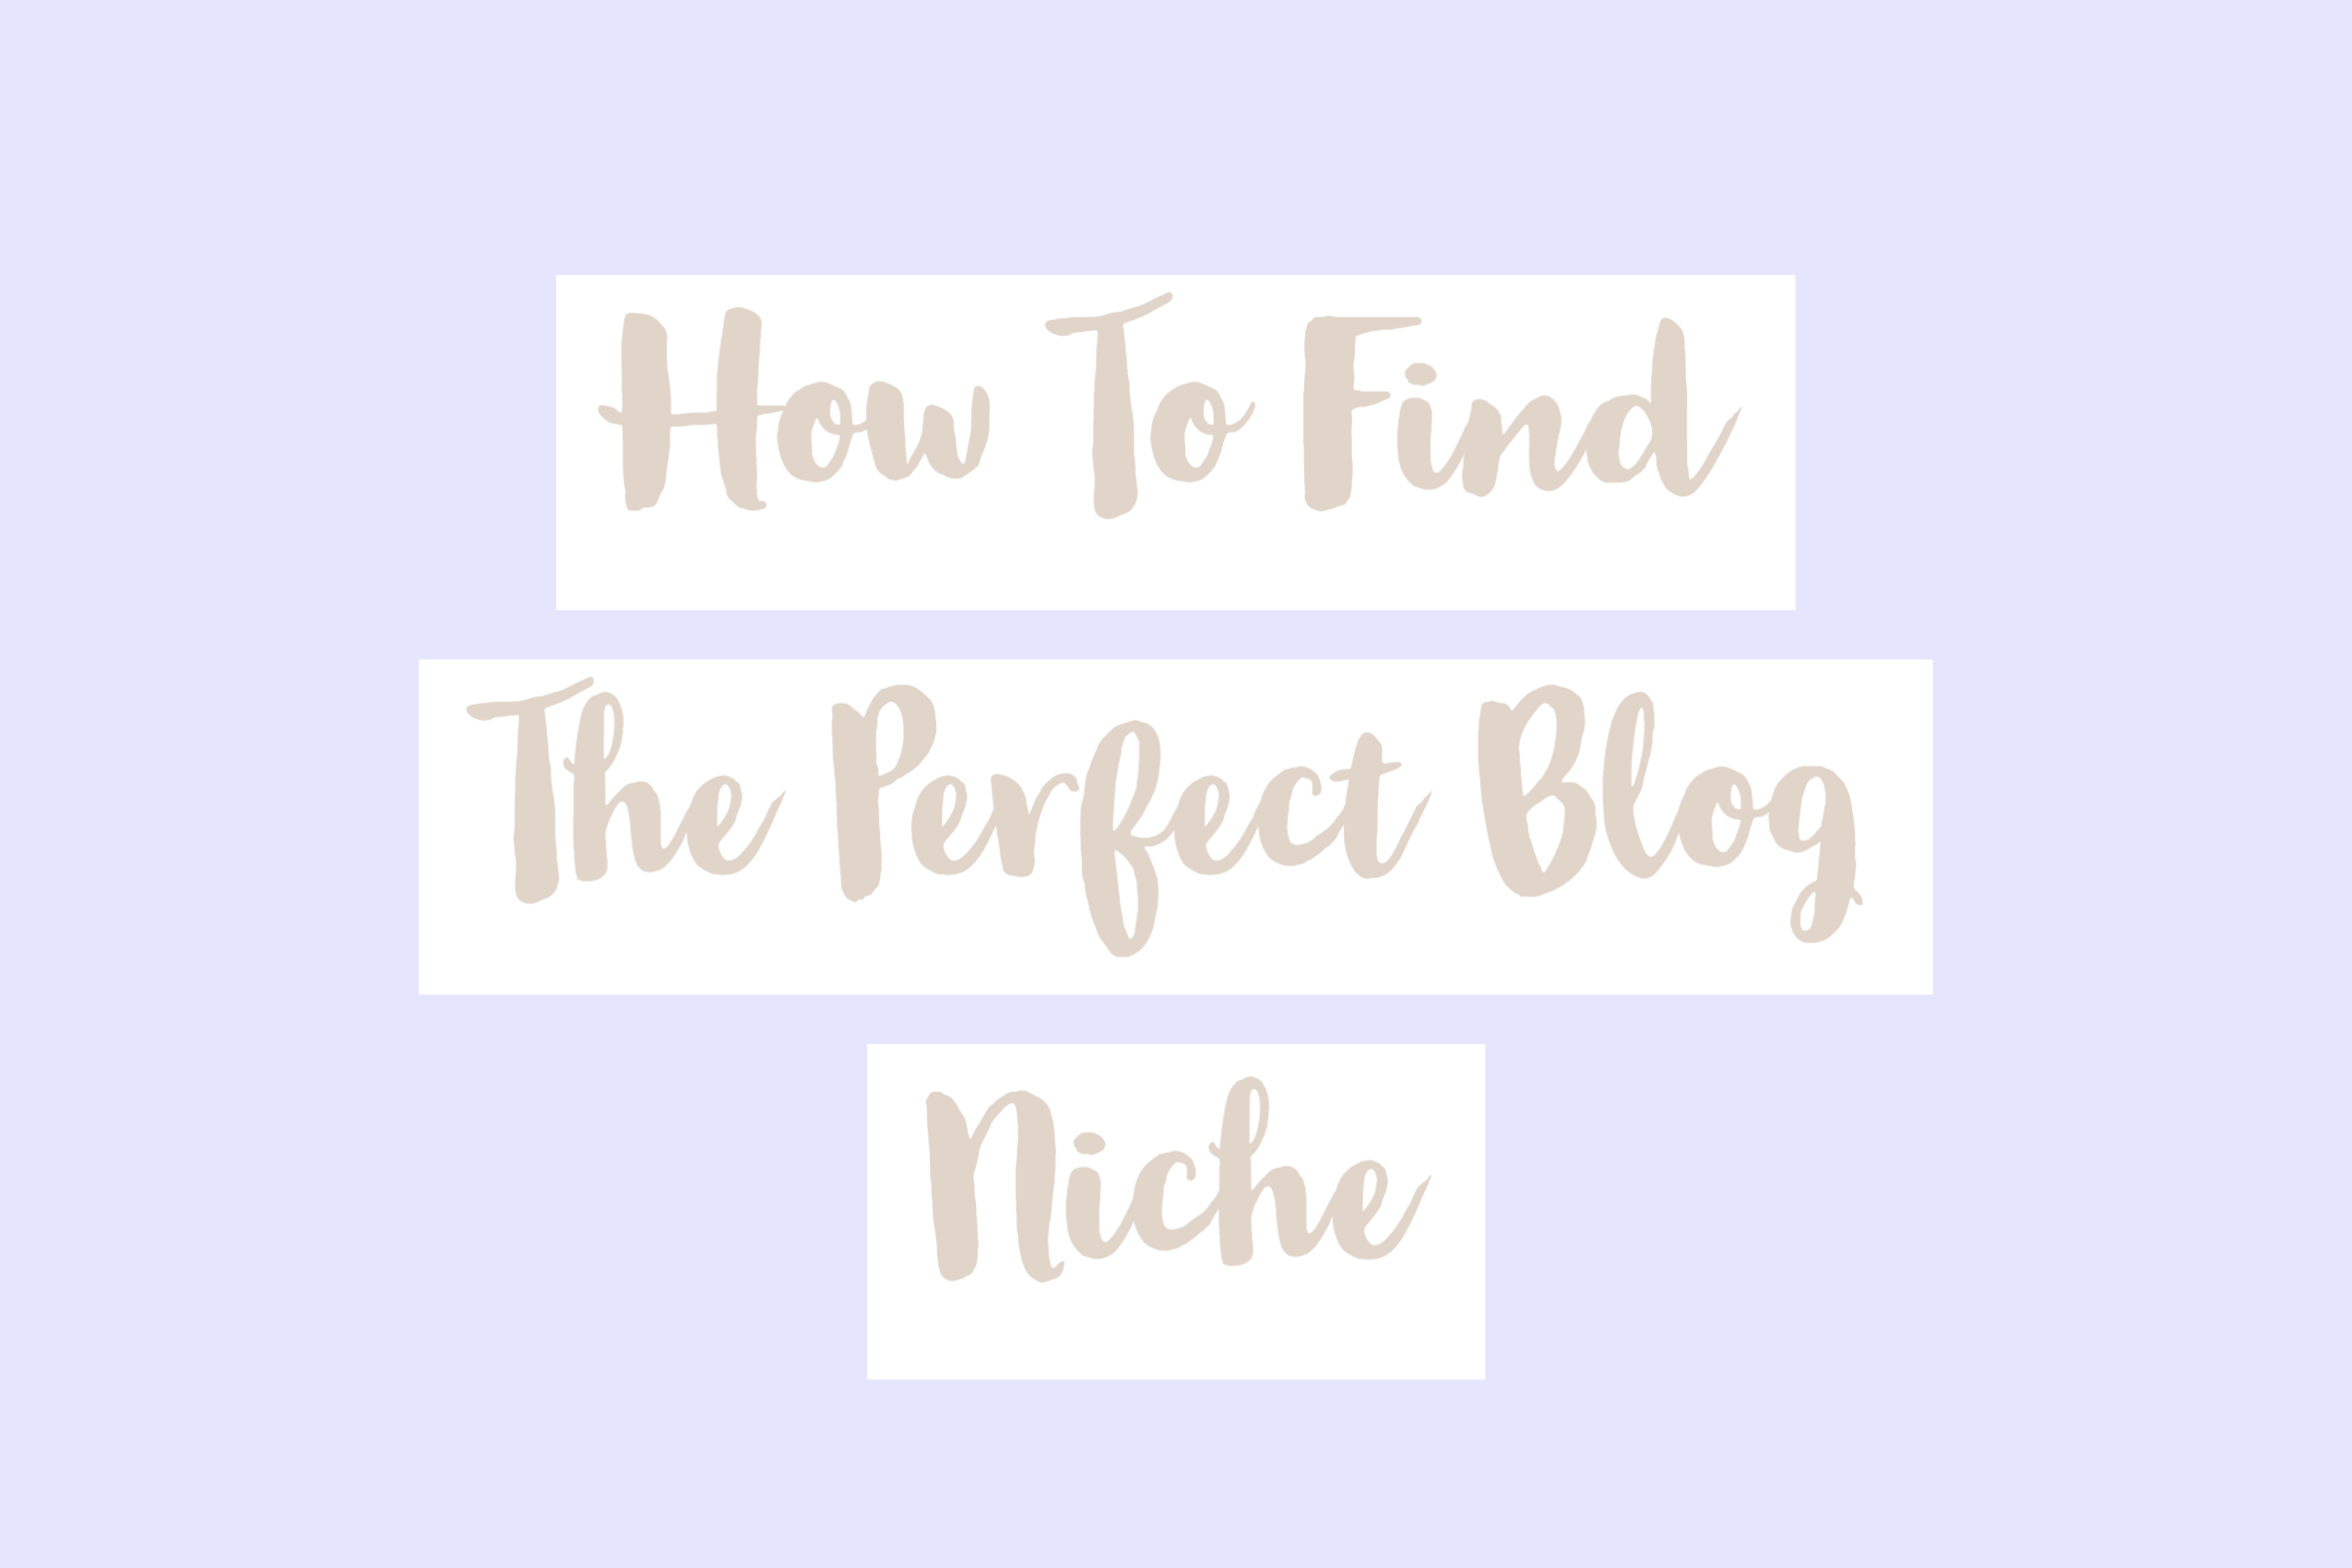 How To Find Your Blog Niche: The Ultimate Guide